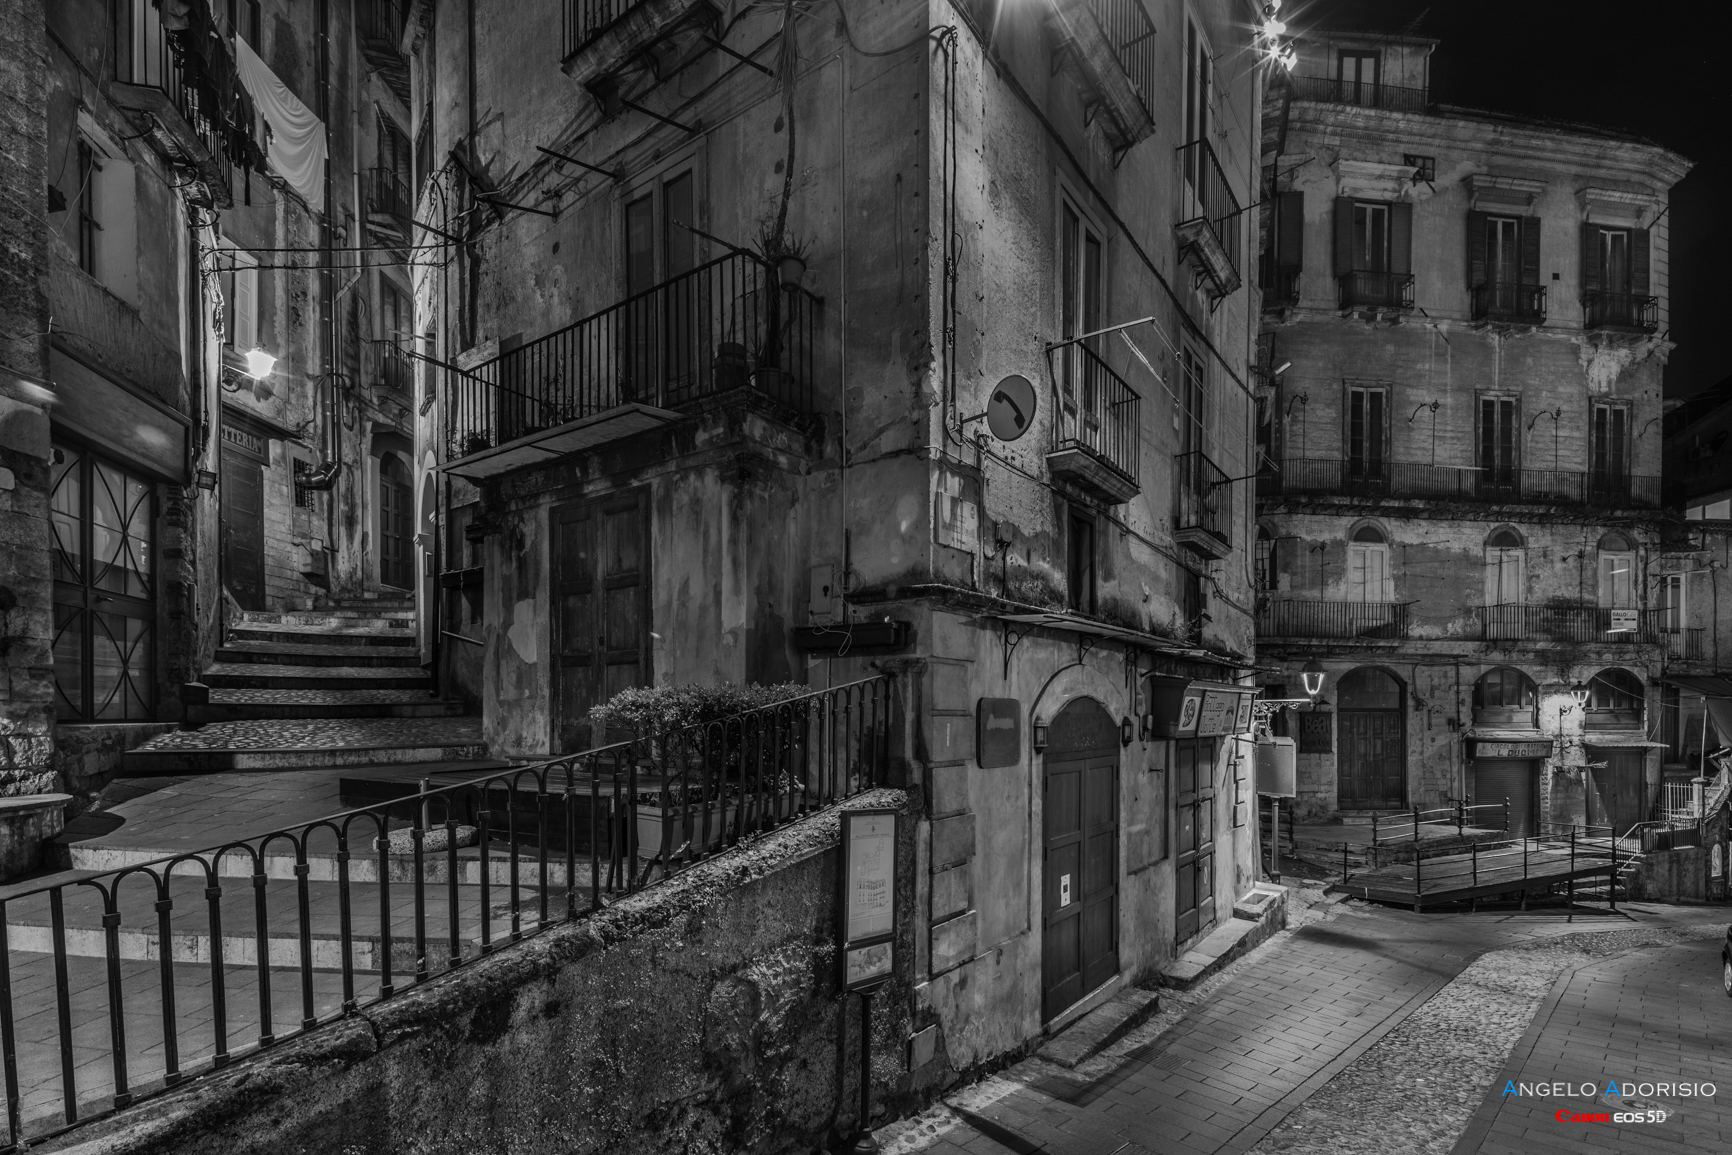 Cosenza Vecchia-A heritage unchanged in time...